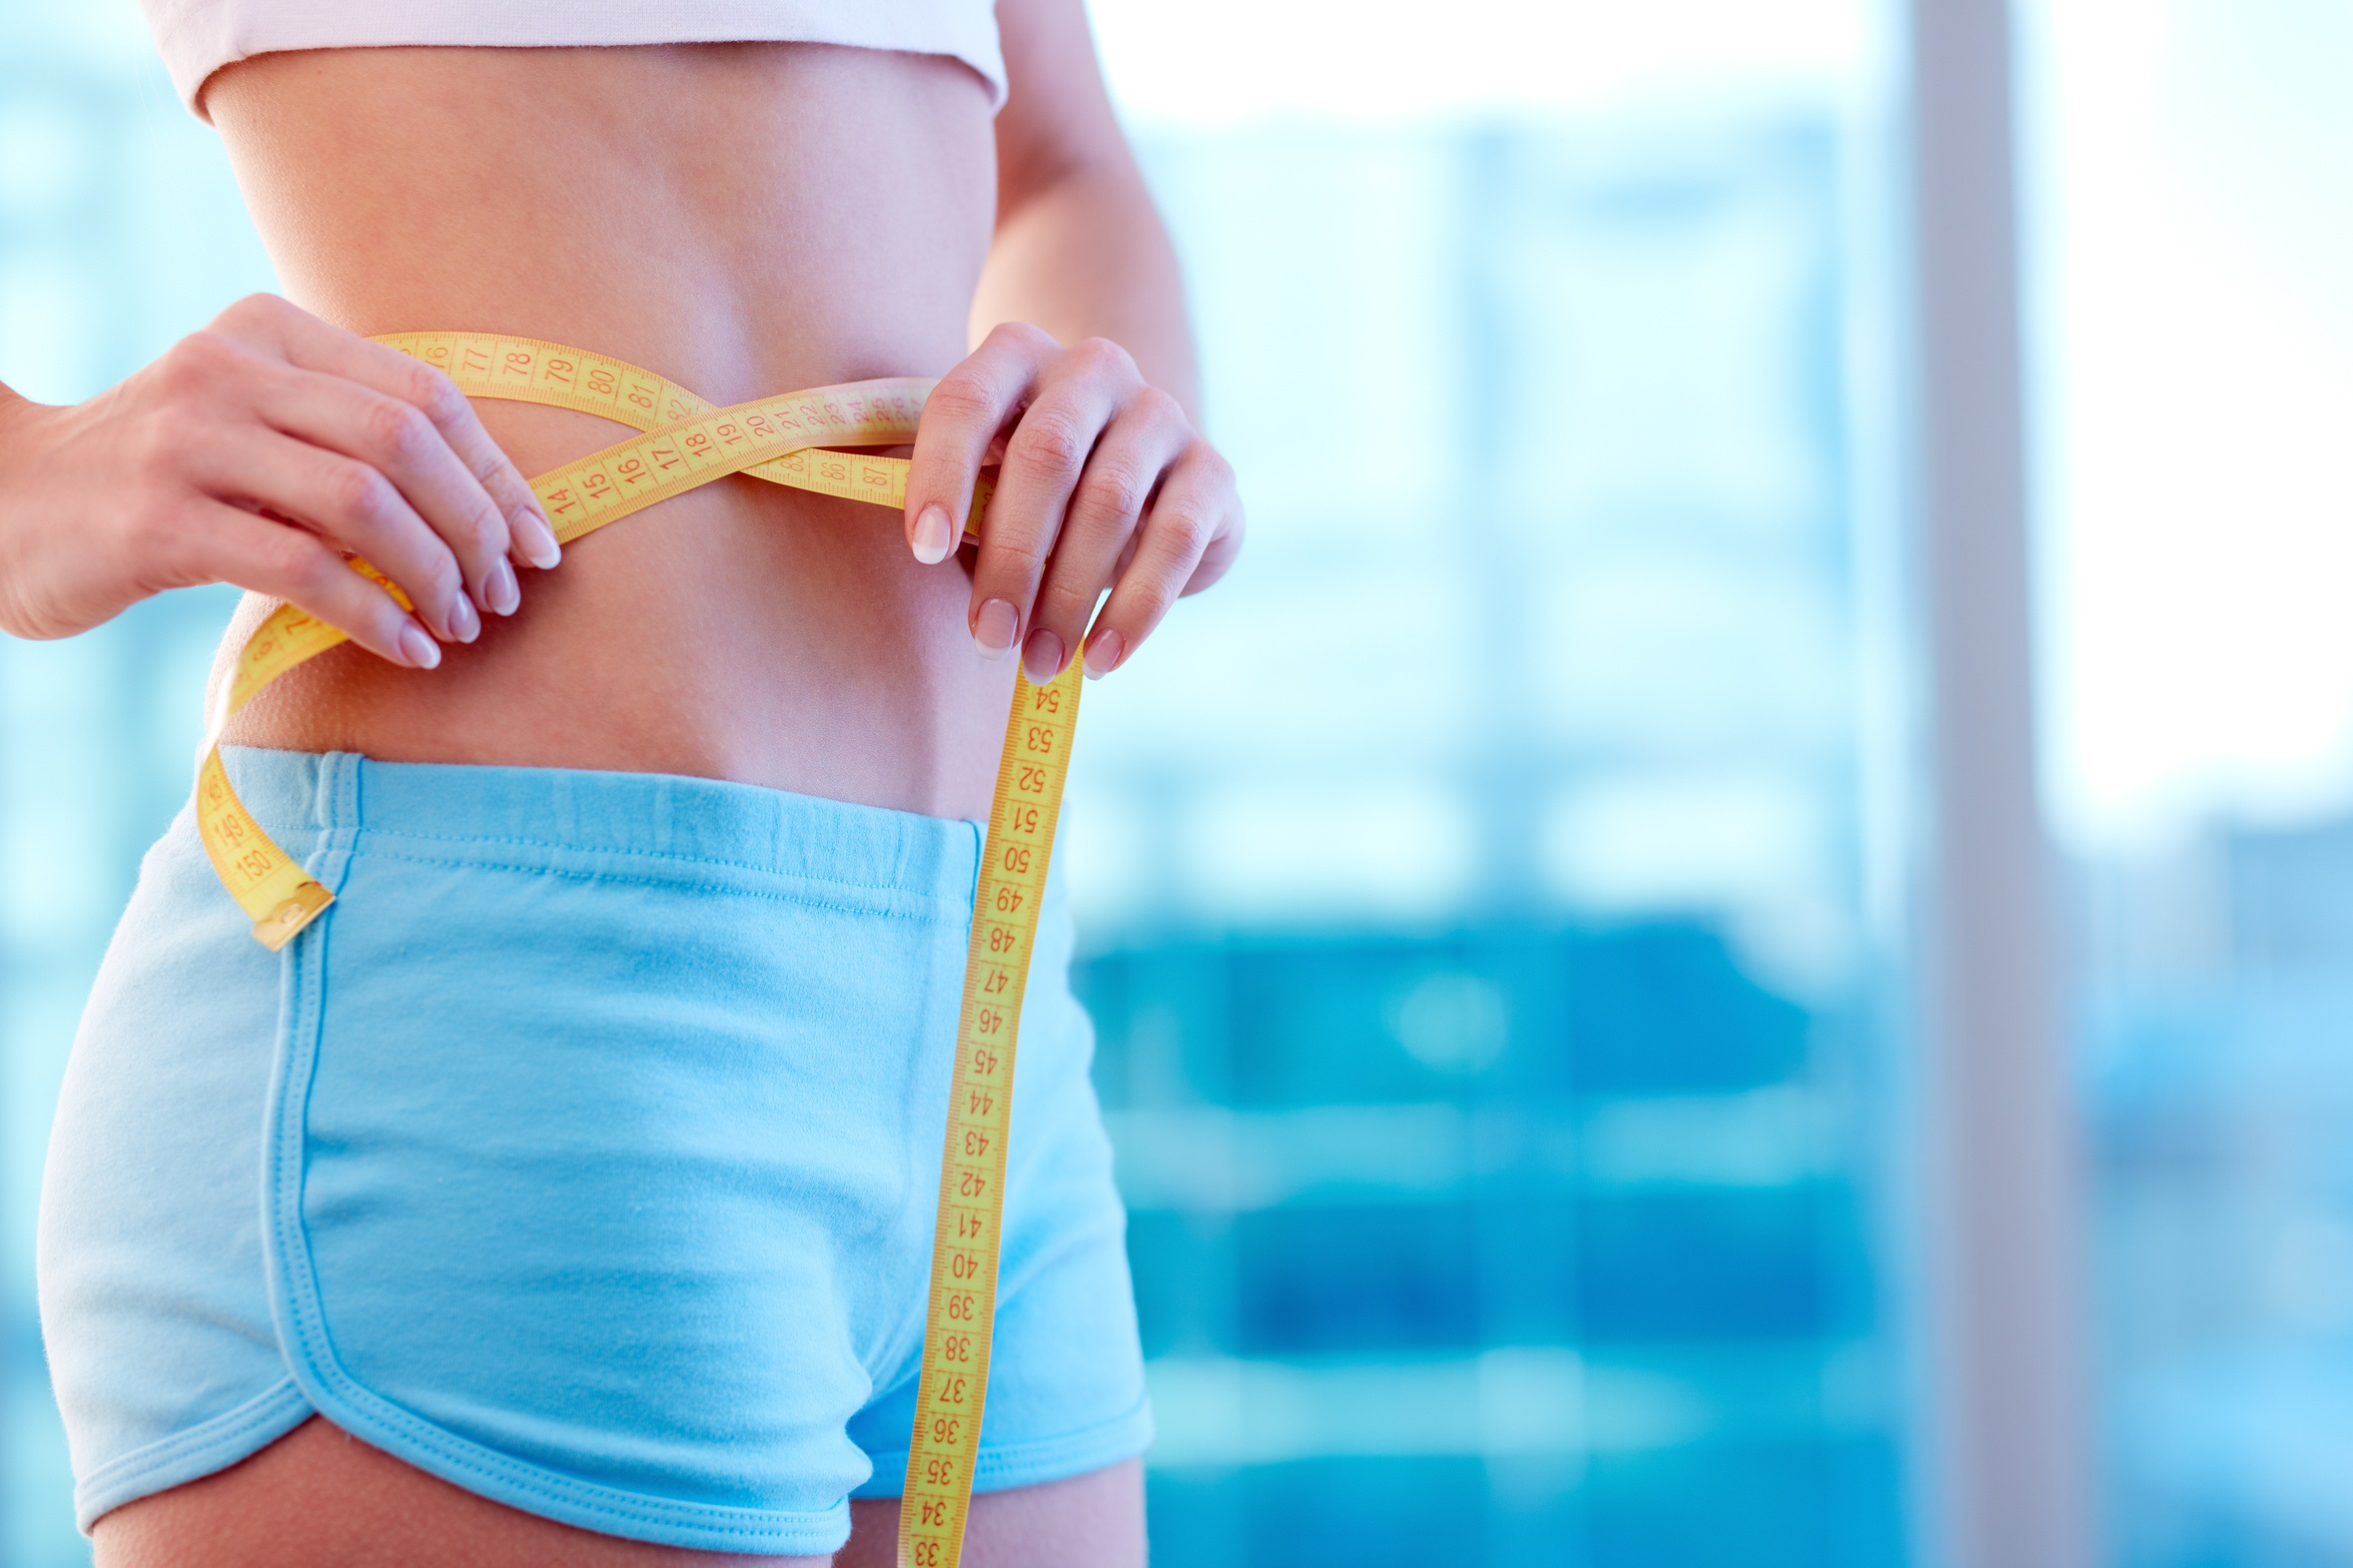 What is the role of magnesium supplements for weight loss?